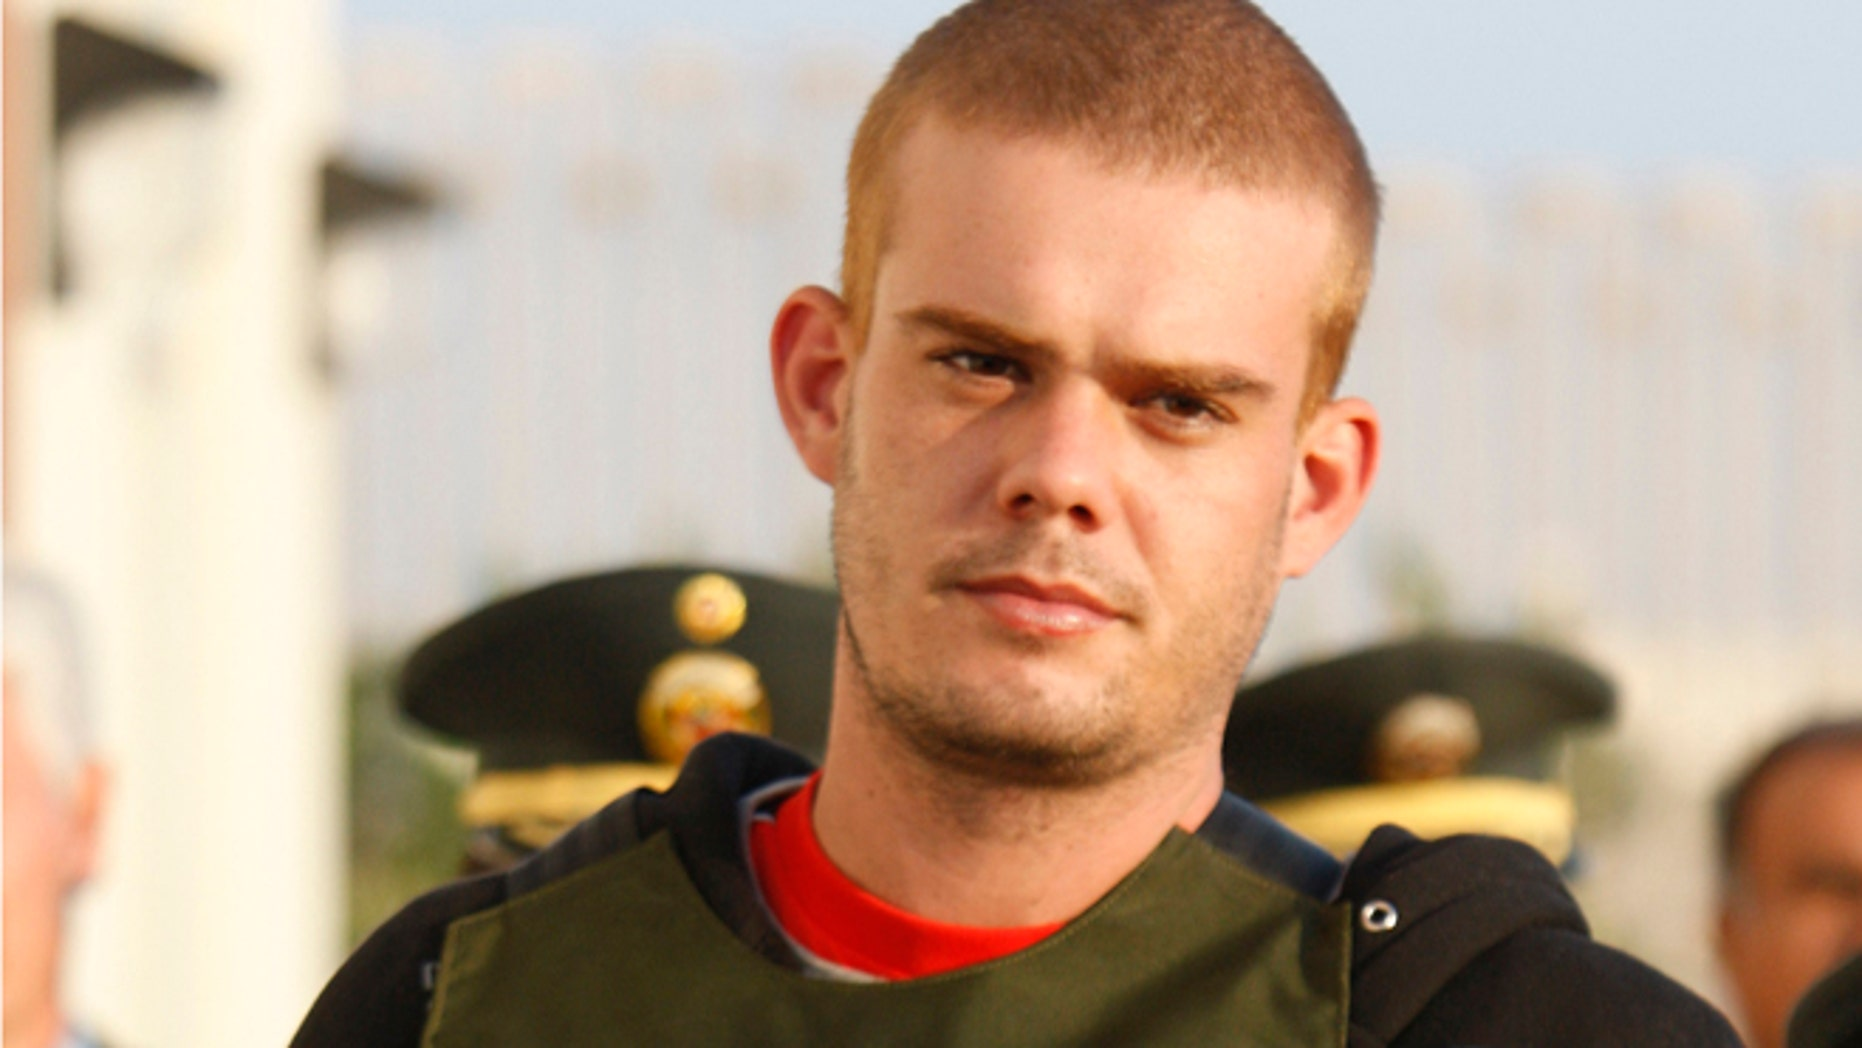 June 4, 2010: In this file photo, Joran Van der Sloot, top, is escorted by police officers outside a Peruvian police station, near the border with Chile in Tacna, Peru.